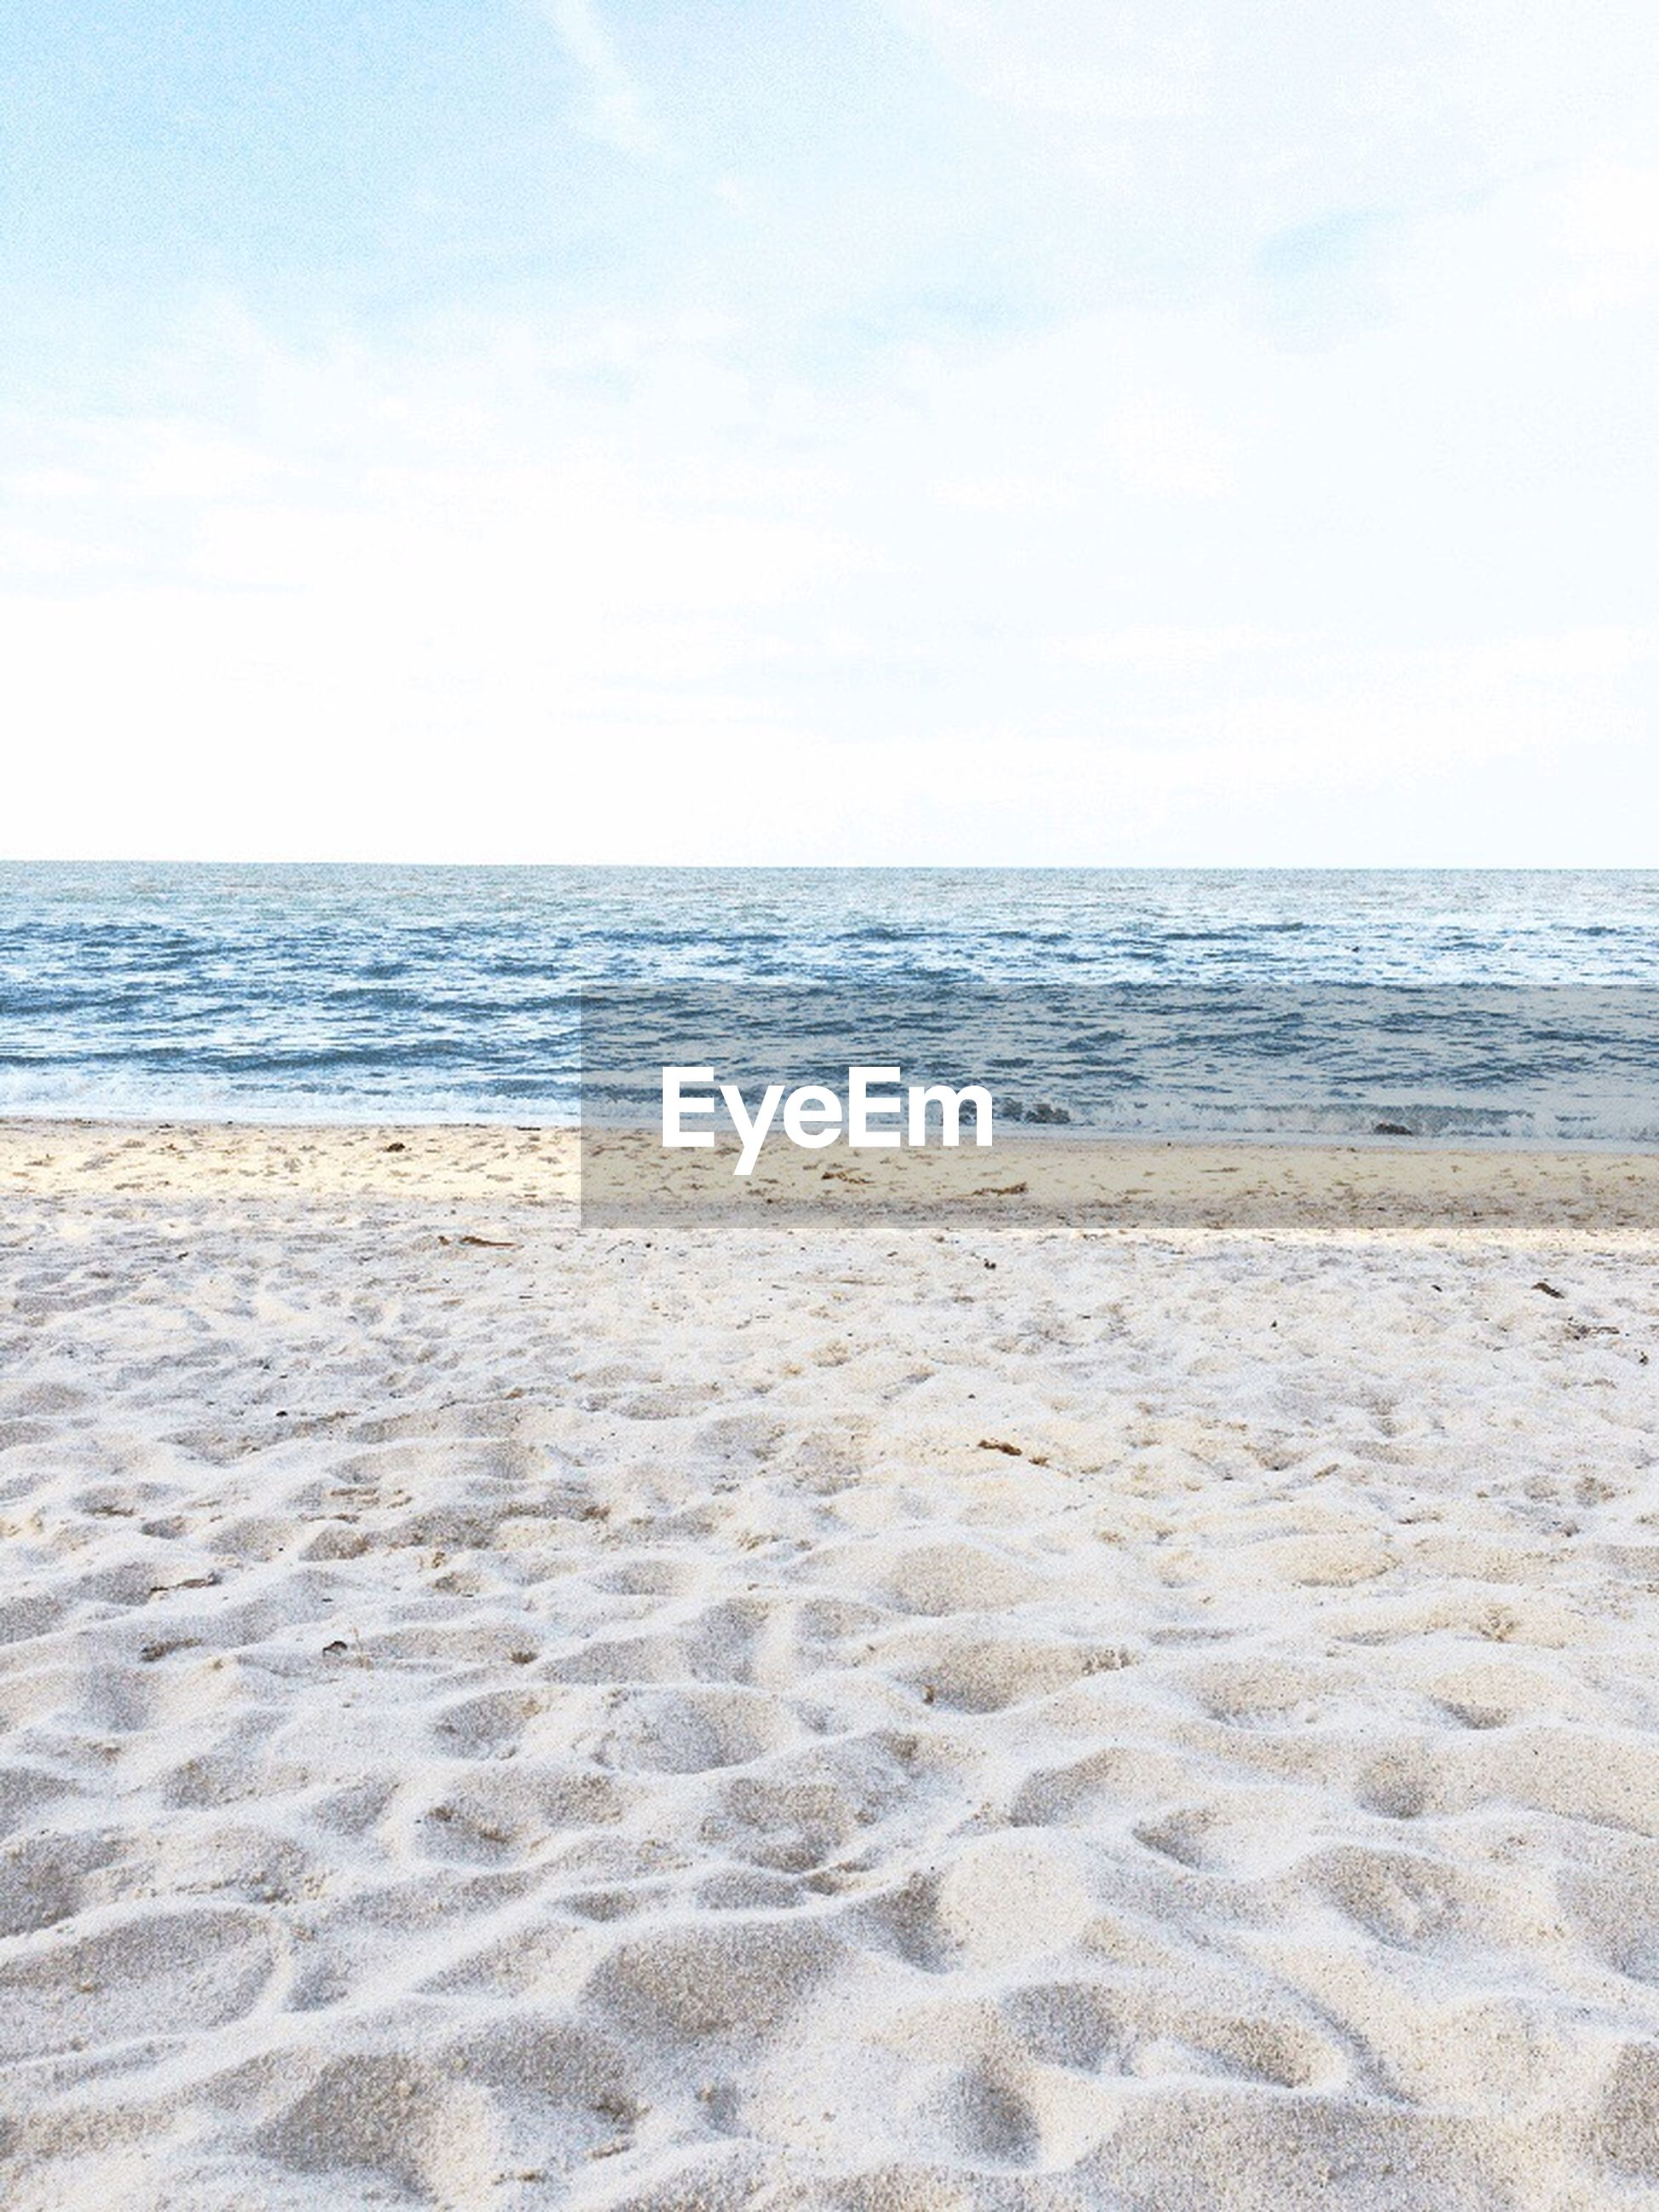 sea, beach, horizon over water, sand, water, nature, sky, scenics, tranquility, day, no people, outdoors, tranquil scene, beauty in nature, wave